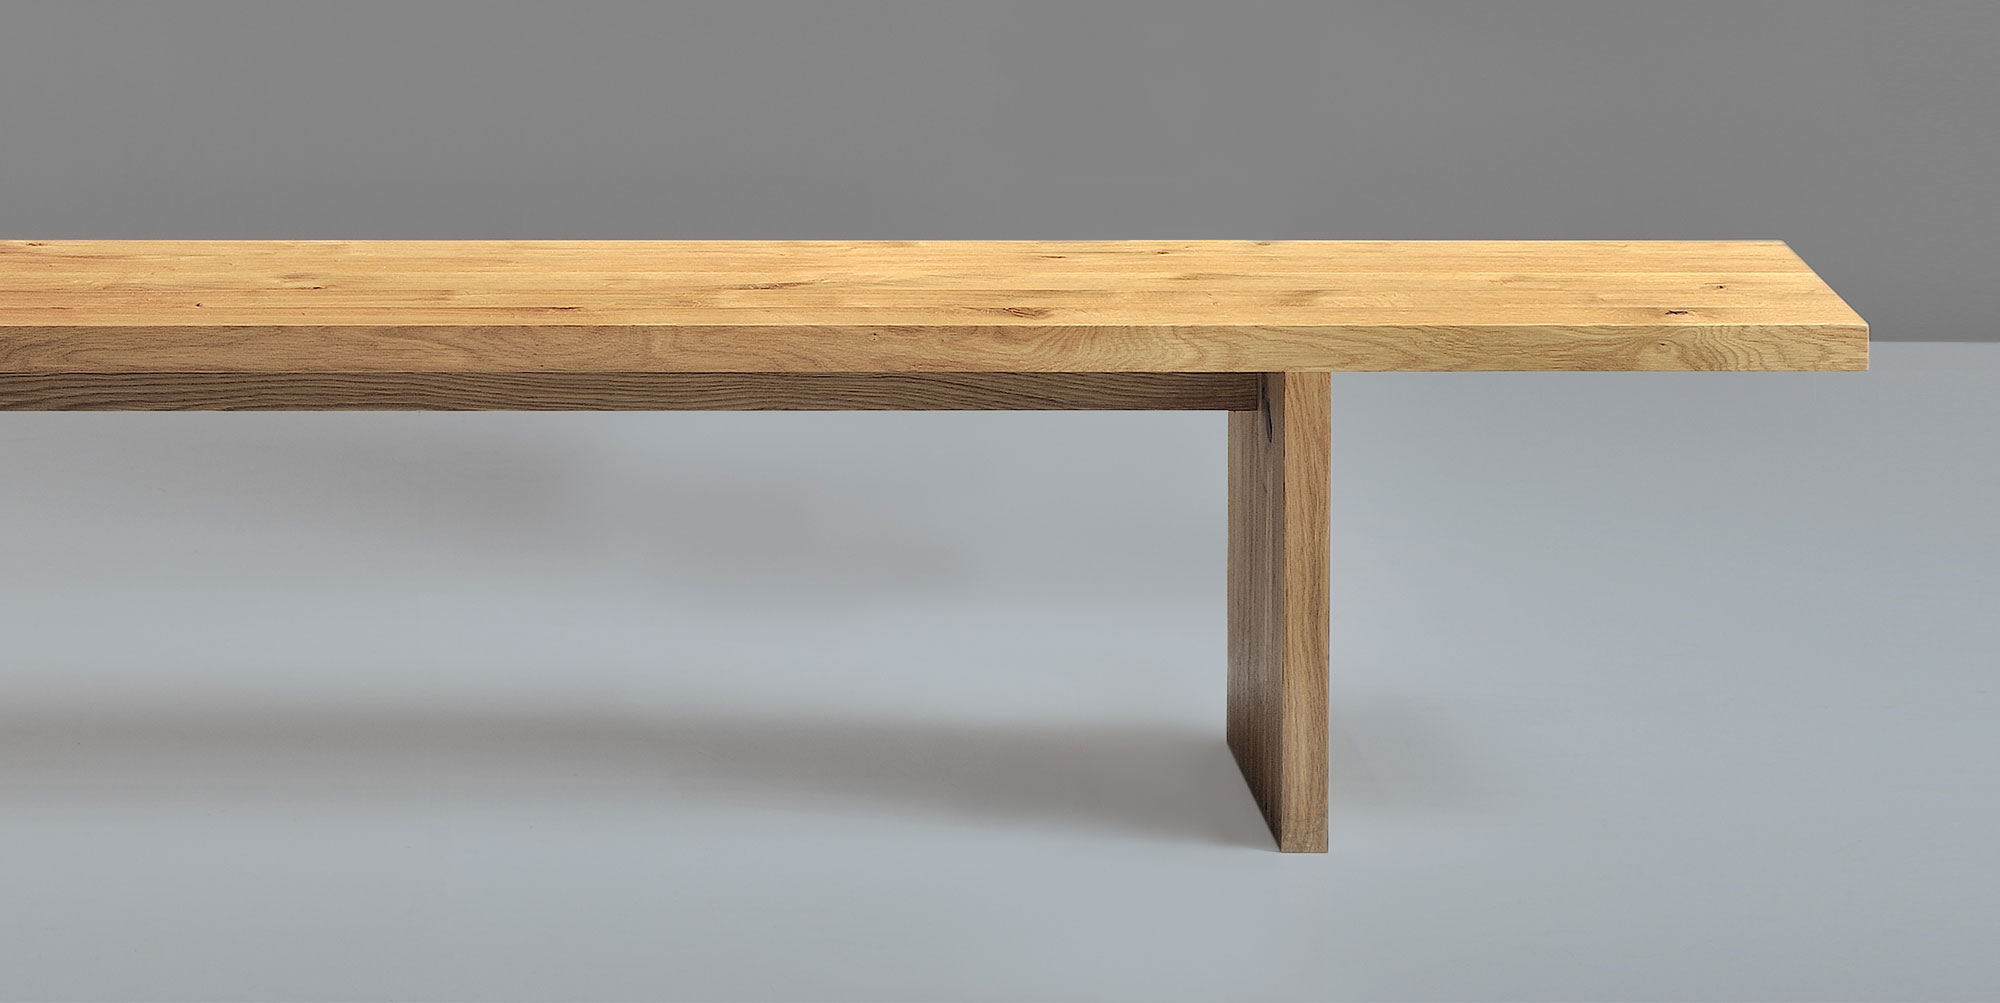 Solid wood bench saga vitamin design for Vitamin design tisch living